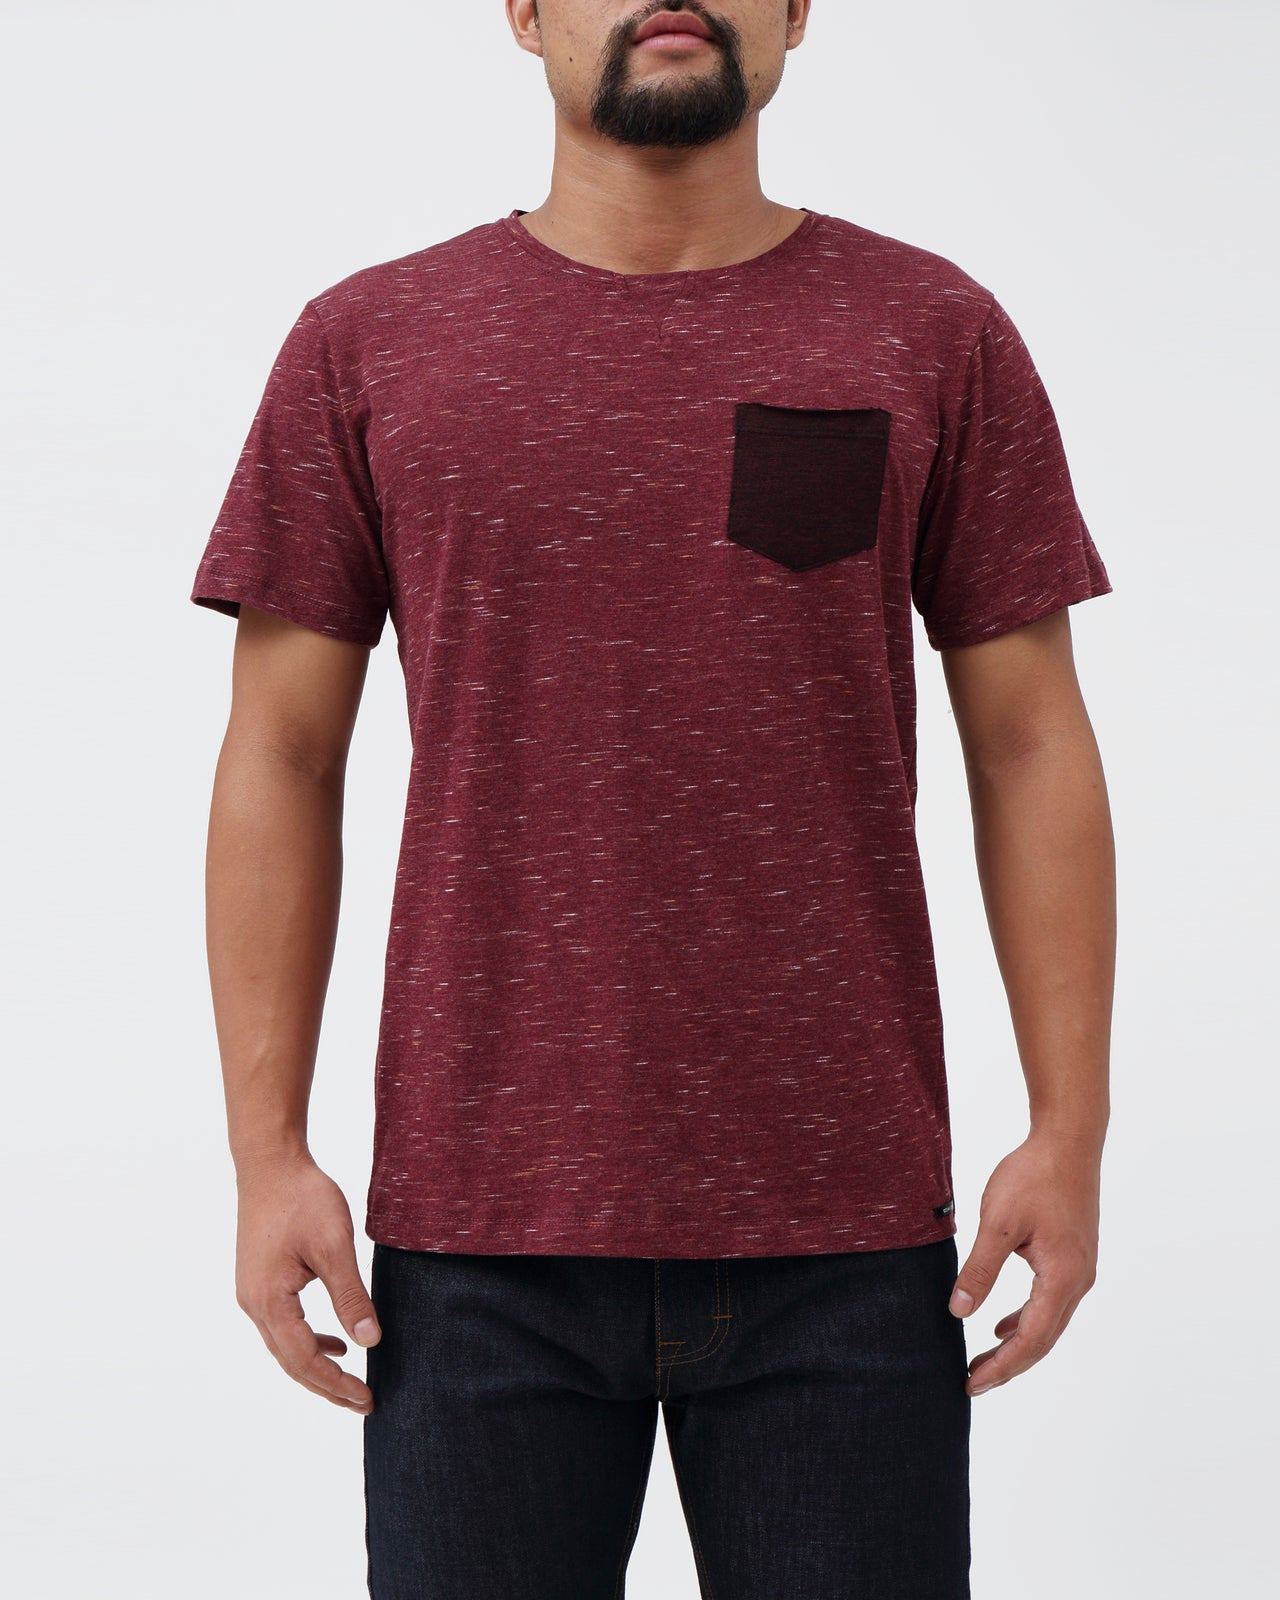 Milan SS Tee - Color: Burgundy | Red